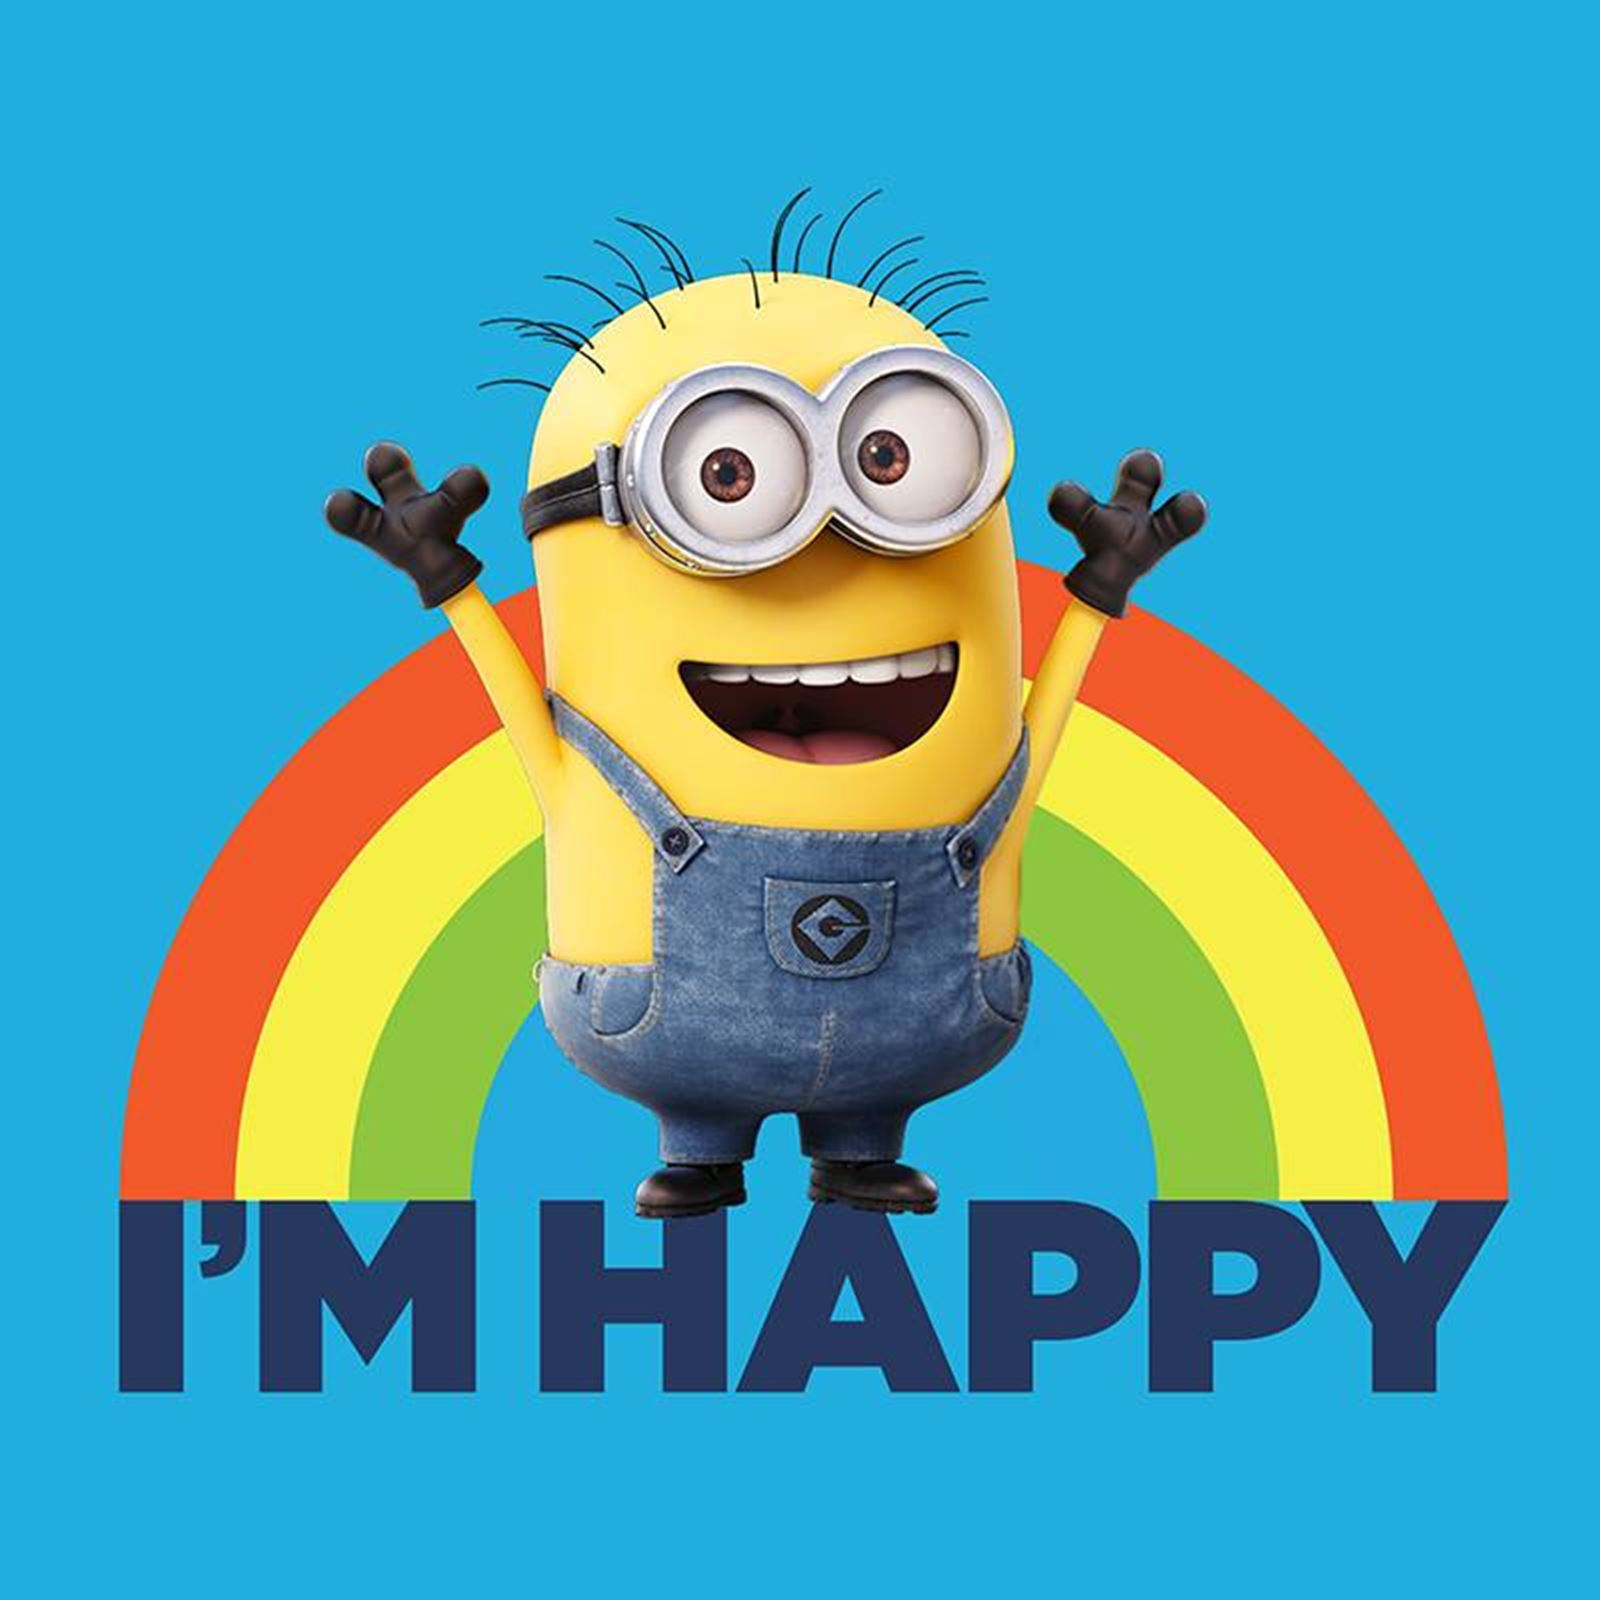 happy-minion-despicable-me-rainbow